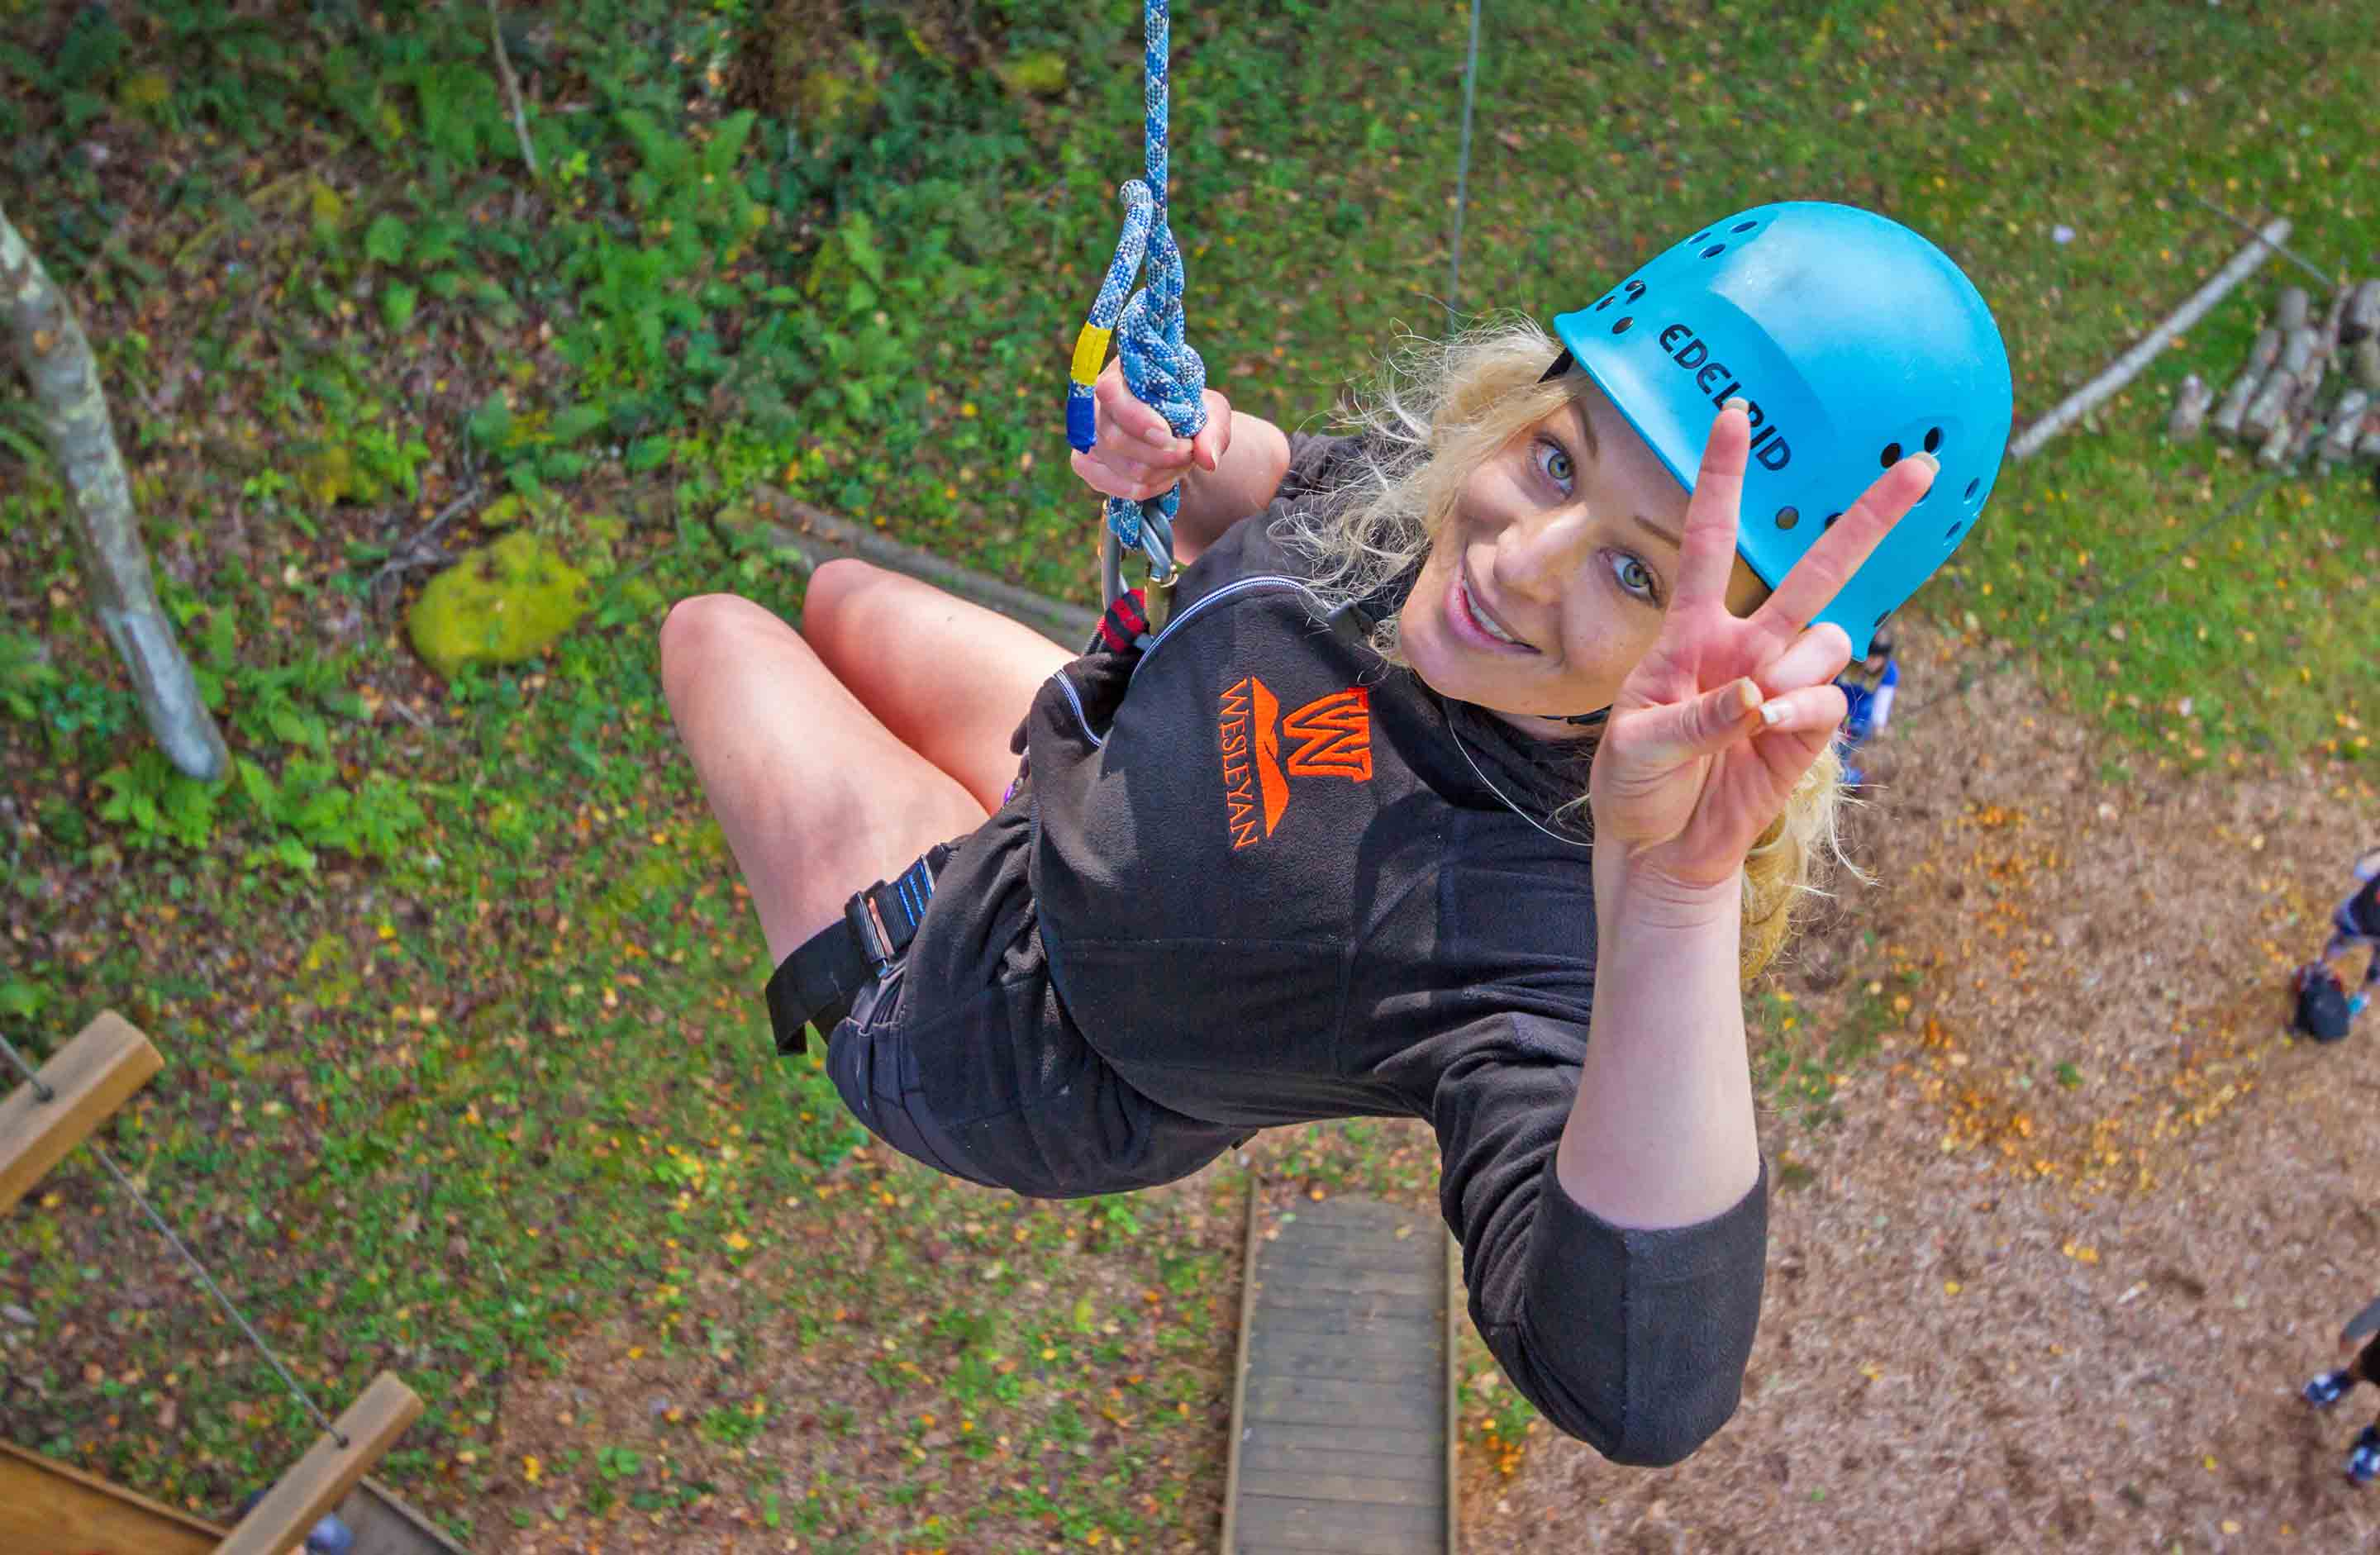 A college student flashes a peace sign while suspended in the air over the Team Challenge Course at ACE Adventure Resort